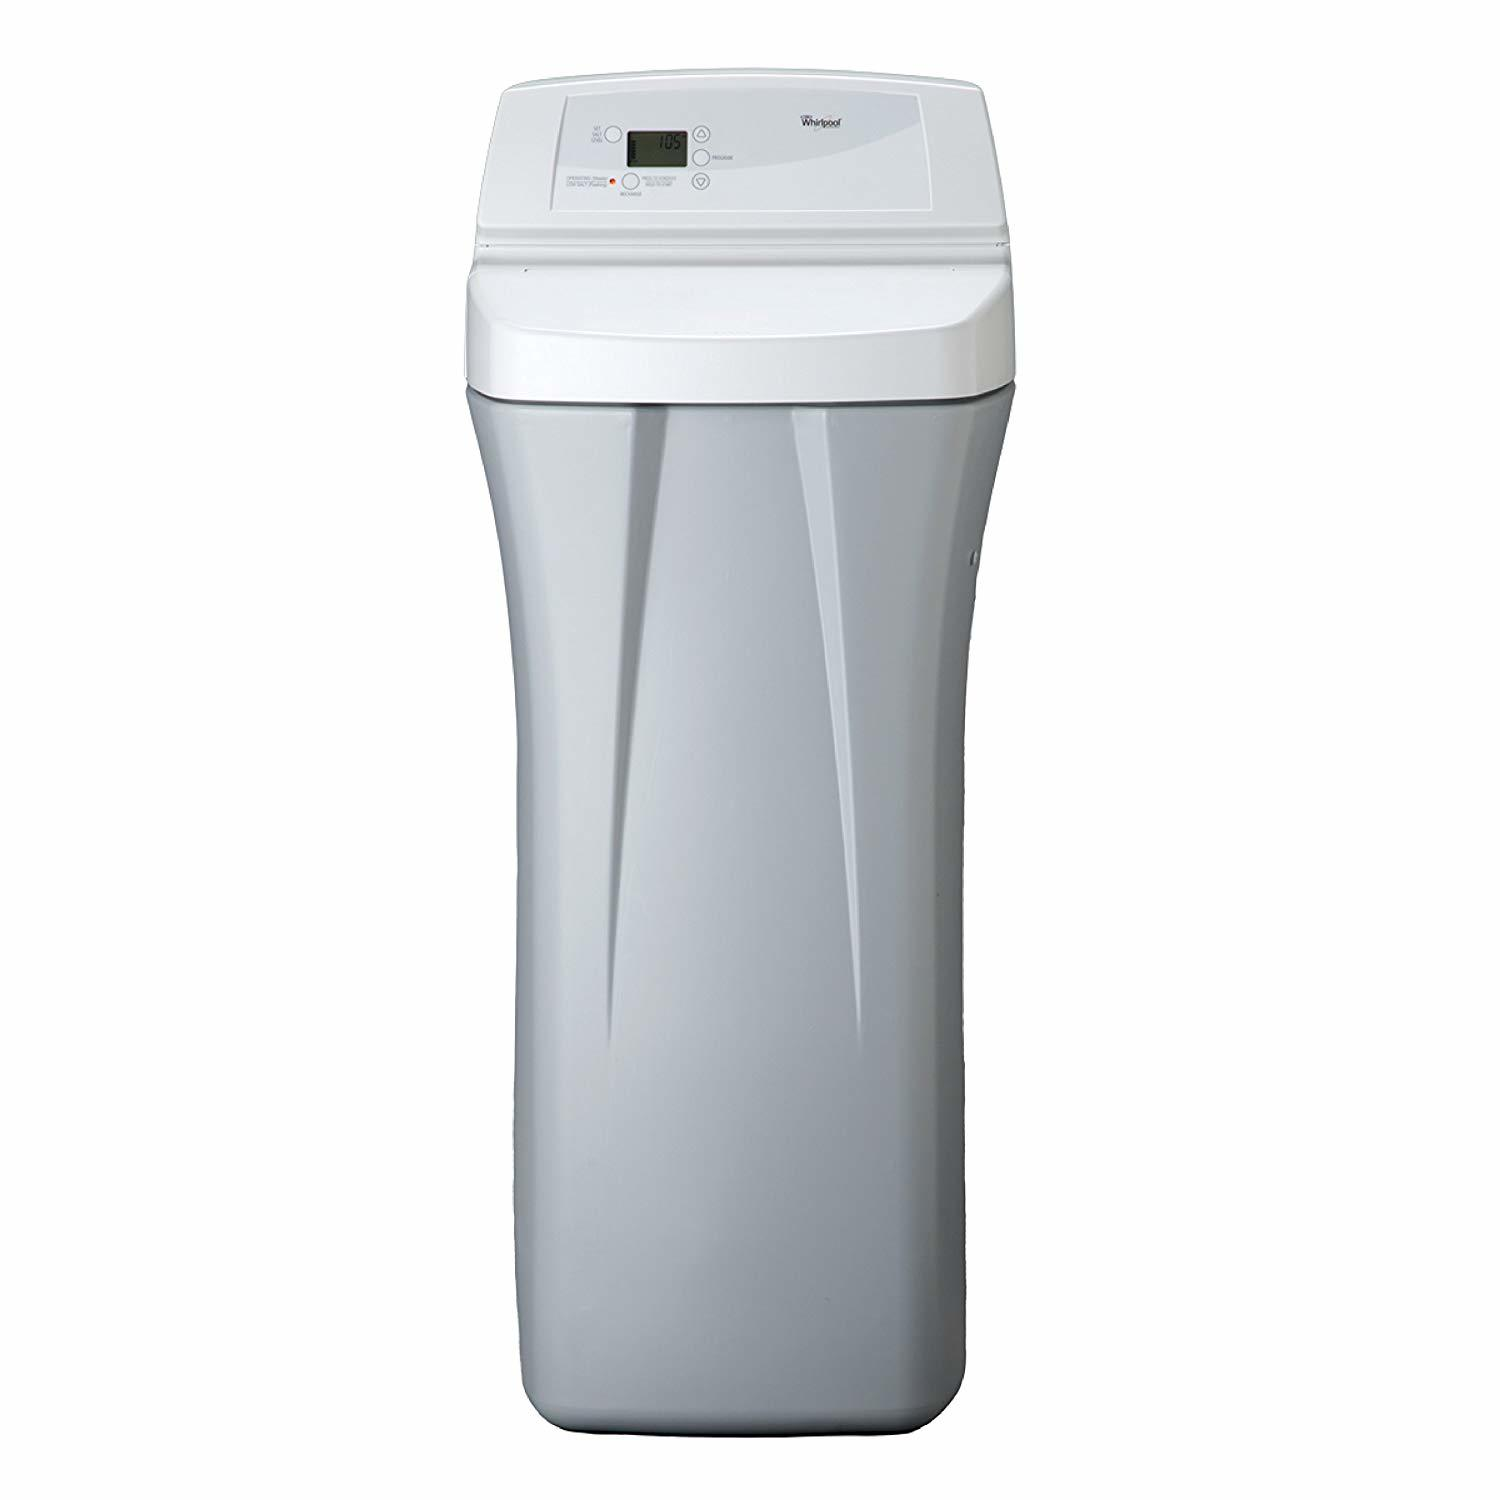 Salt-Based Water Softener